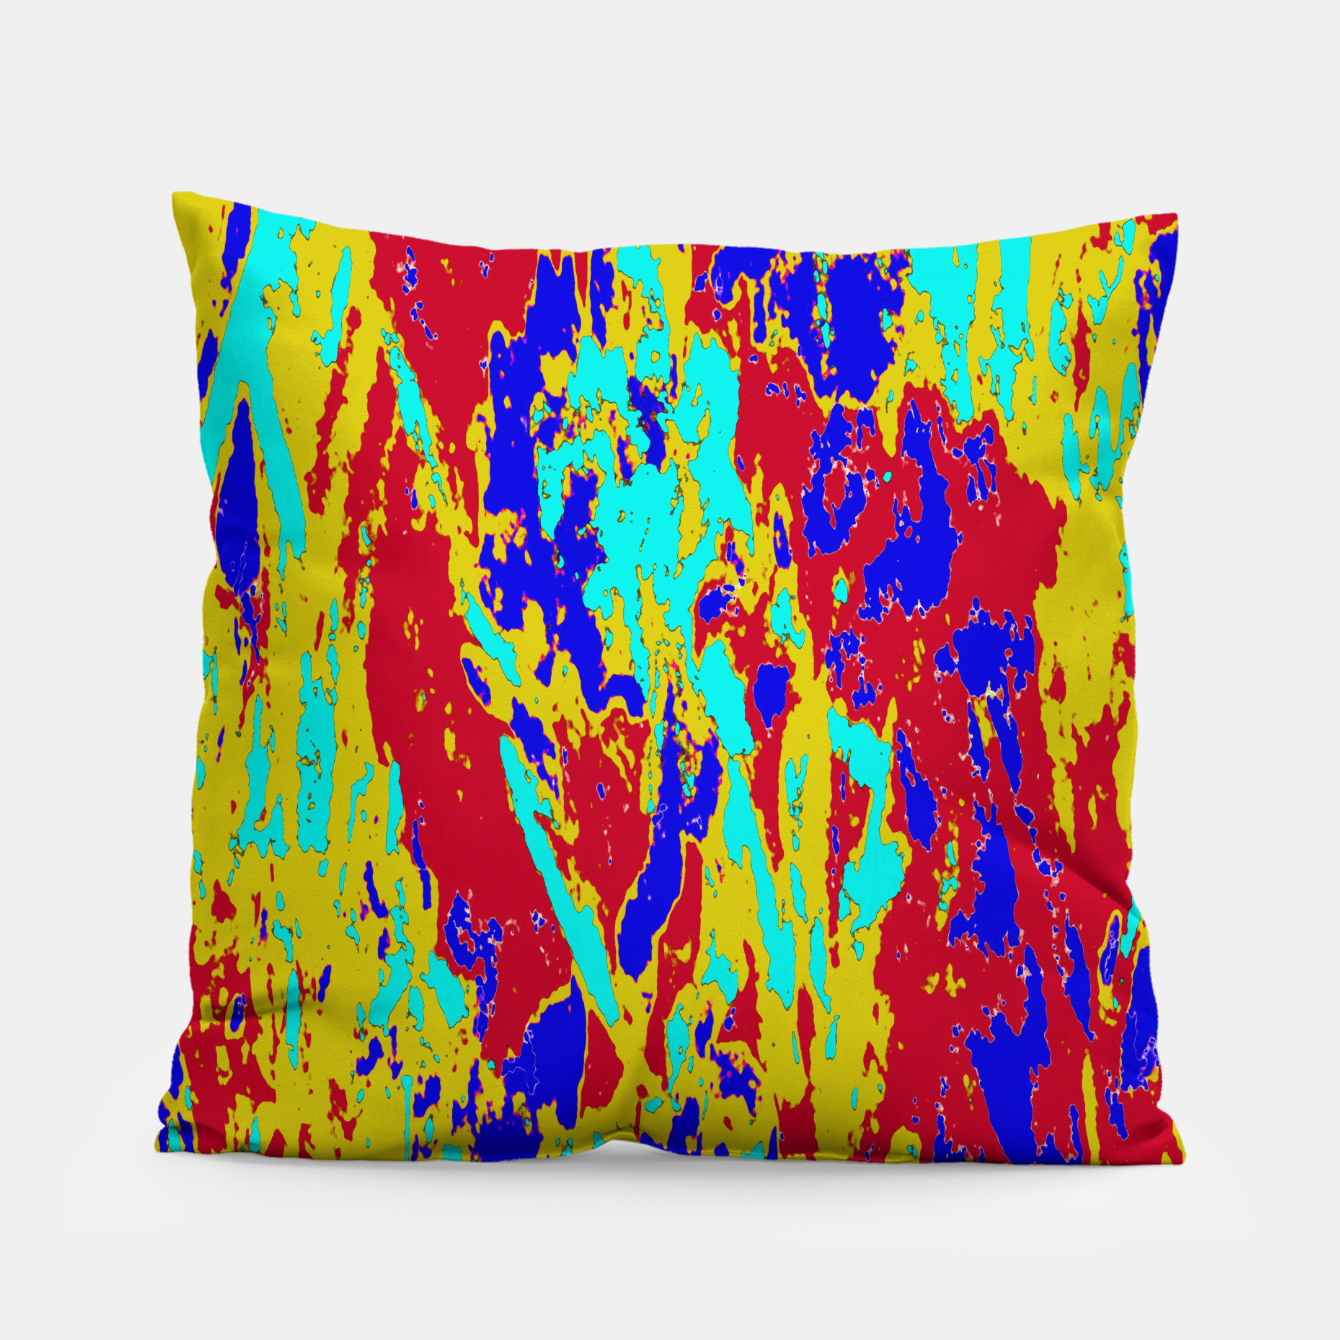 Image de Multicolored Vibrant Abstract Textre Print Pillow - Live Heroes